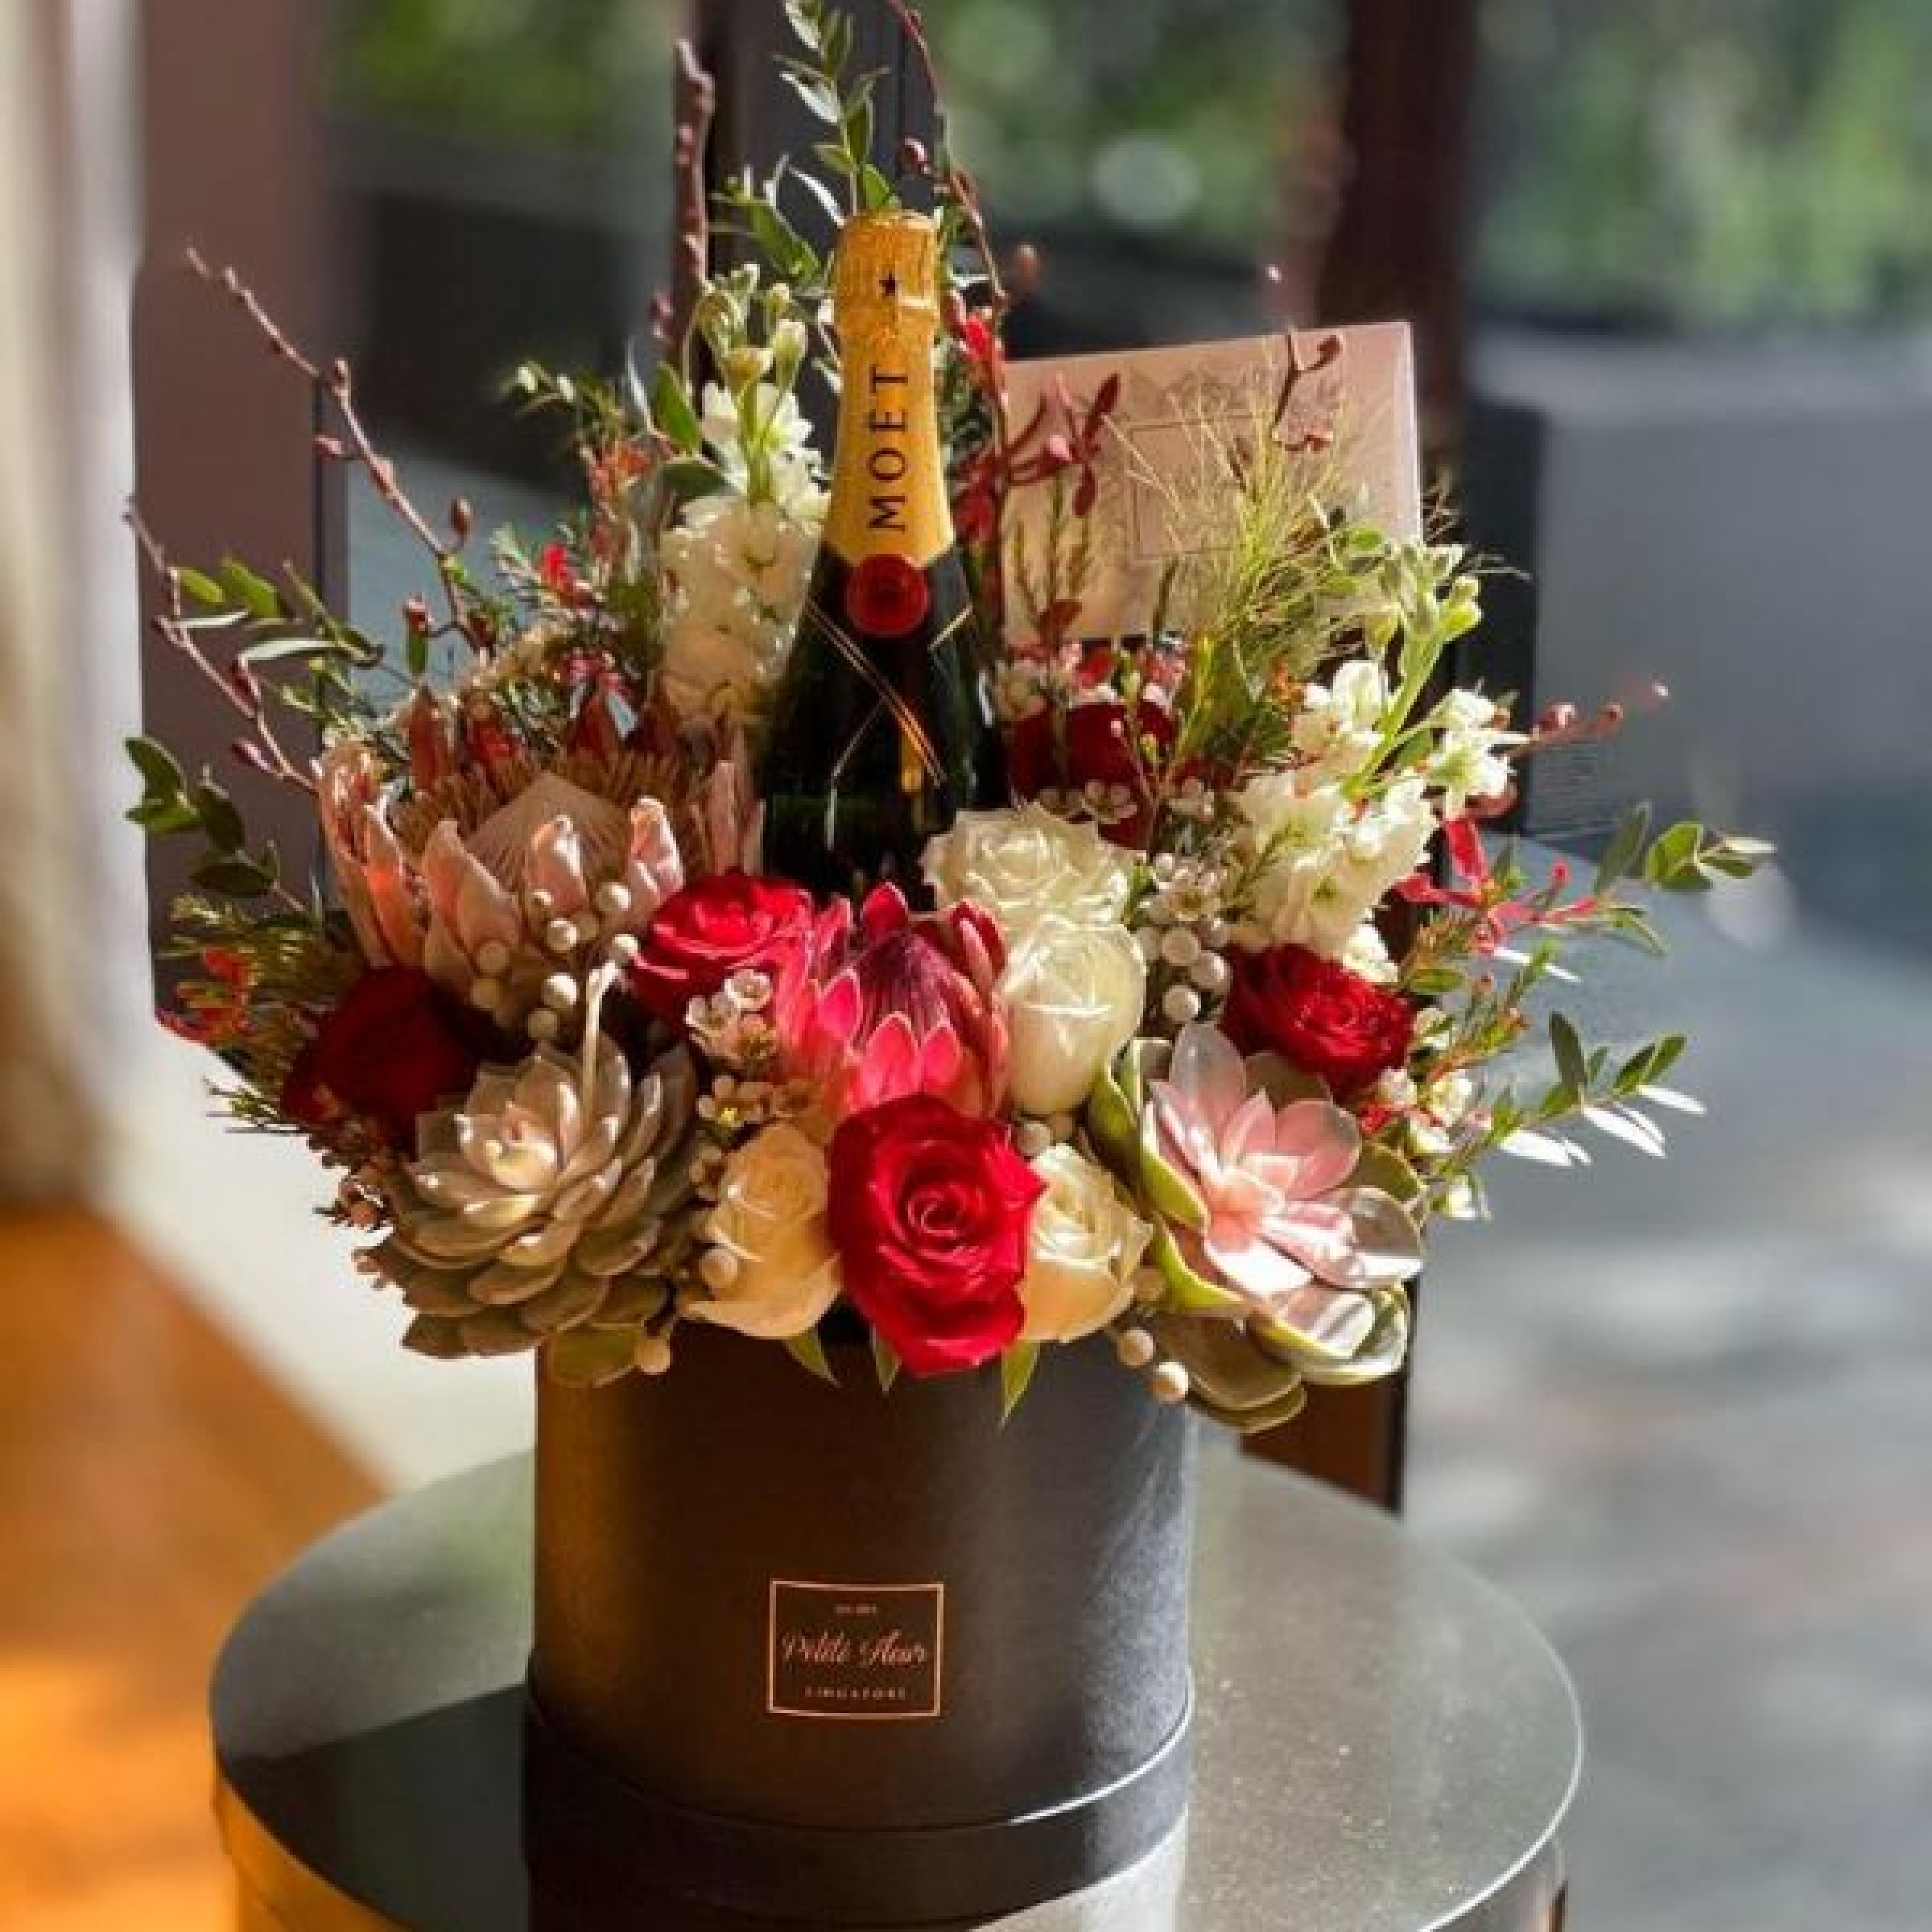 Queen of Hearts with Moet & Chandon Imperial